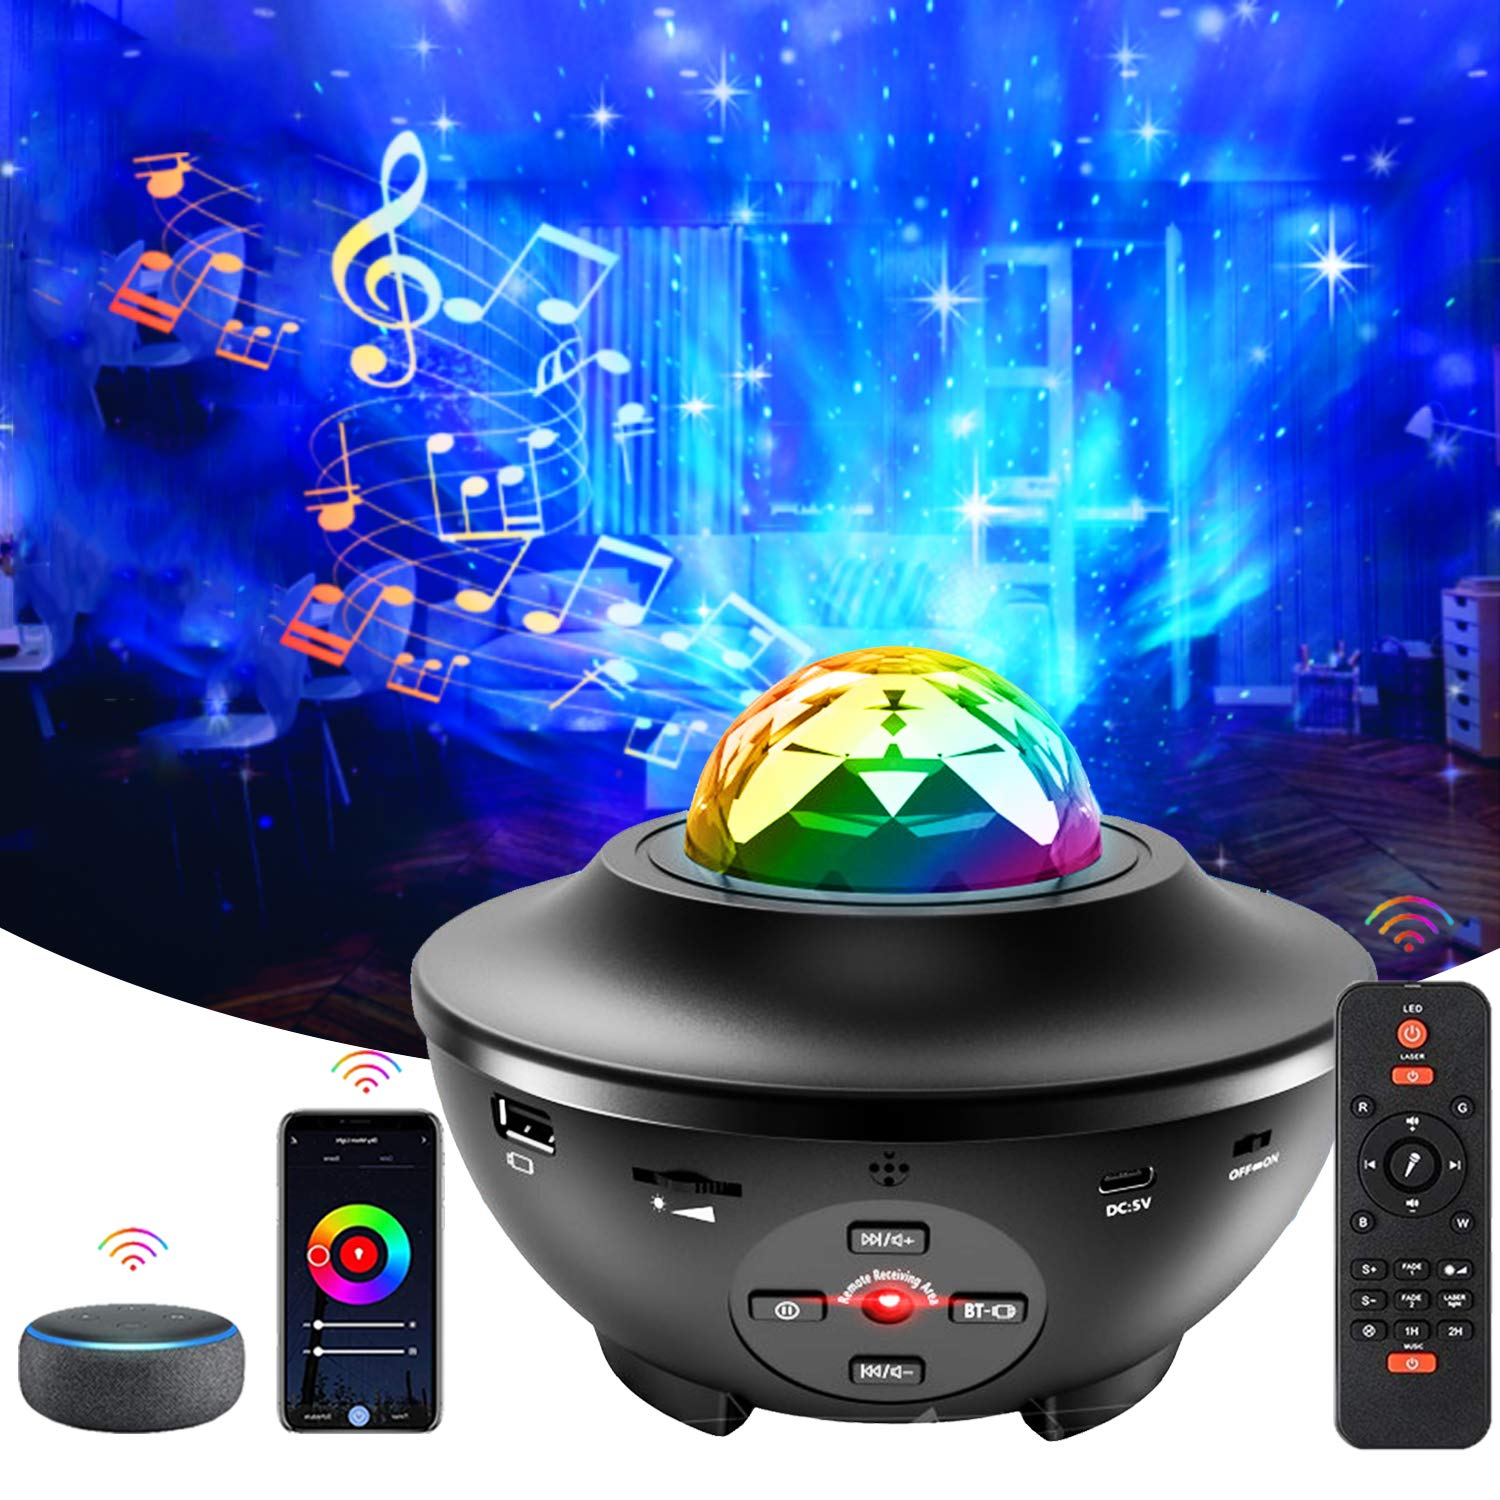 Galaxy Projector, Star Projector 3 in 1 Night Light Projector Working with Smart App & Alexa, Google Assistant, Starlight Projector with Music Speaker & Remote Control for Bedroom Kids Adults